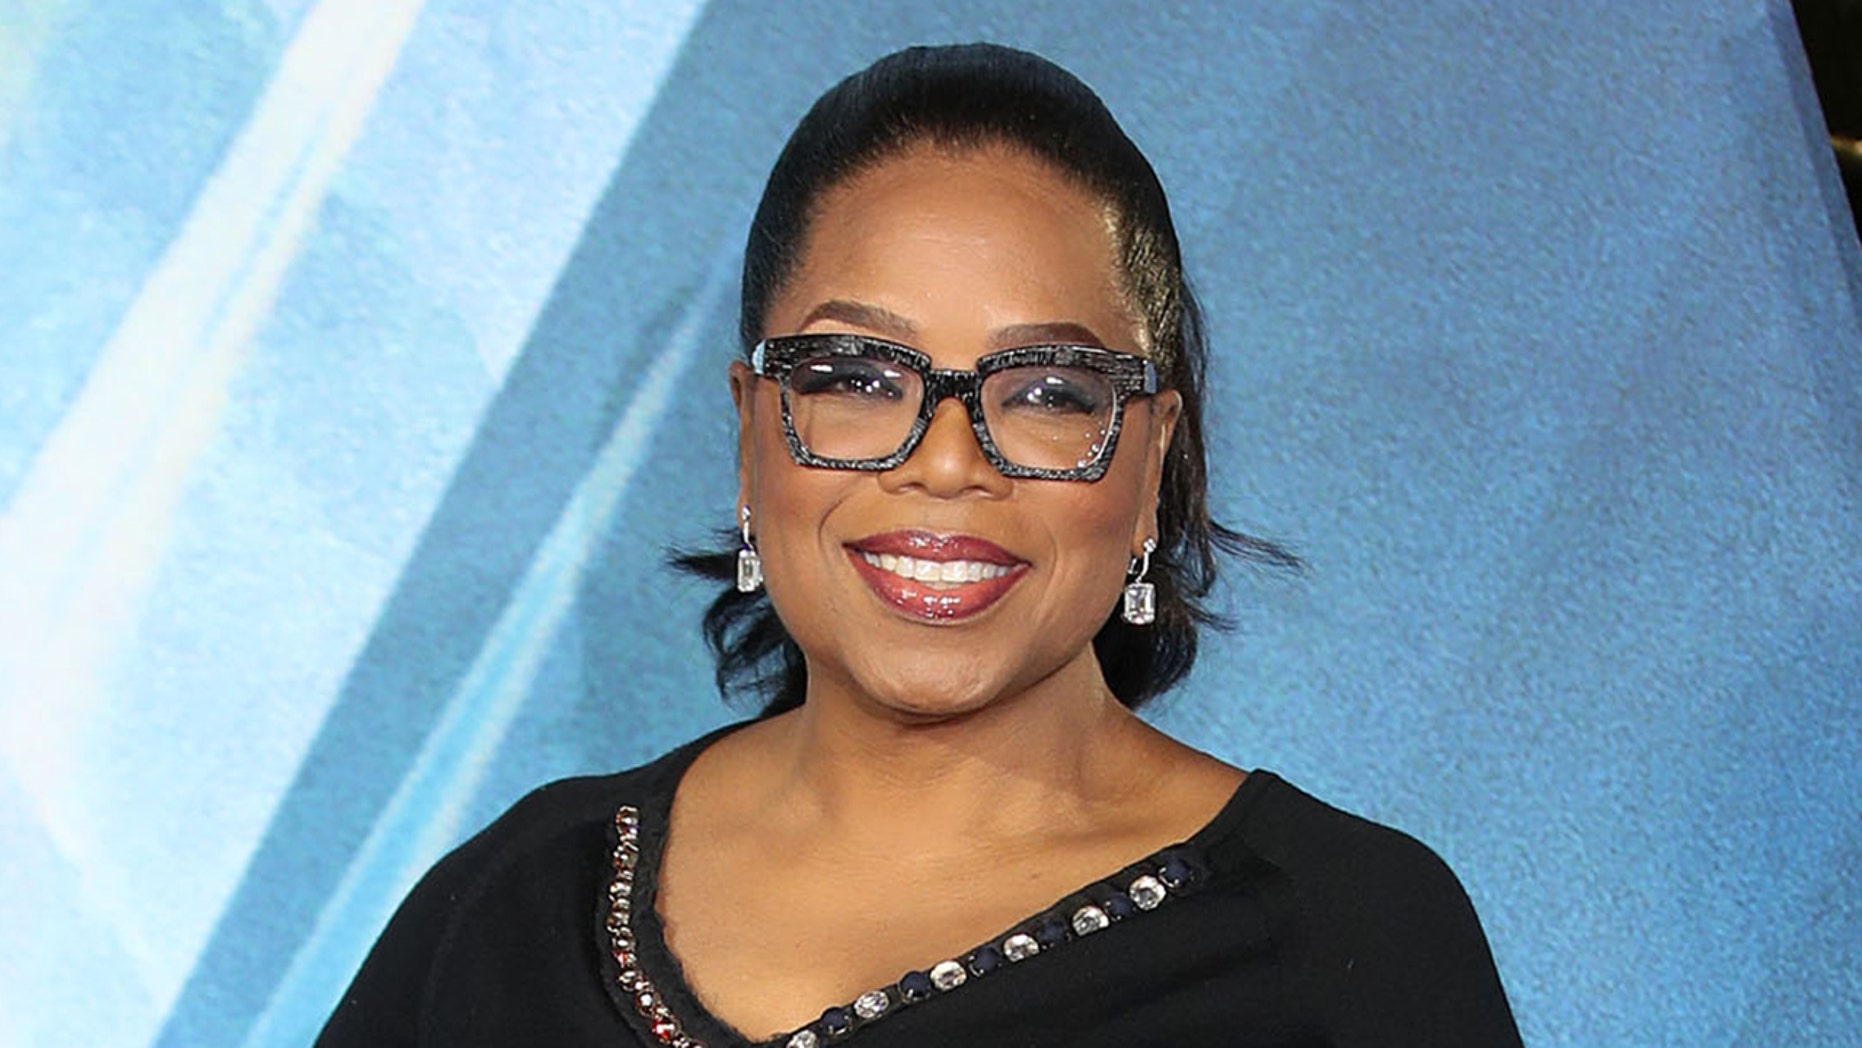 Oprah Winfrey Attends The European Premiere Of A Wrinkle In Time At Bfi Imax